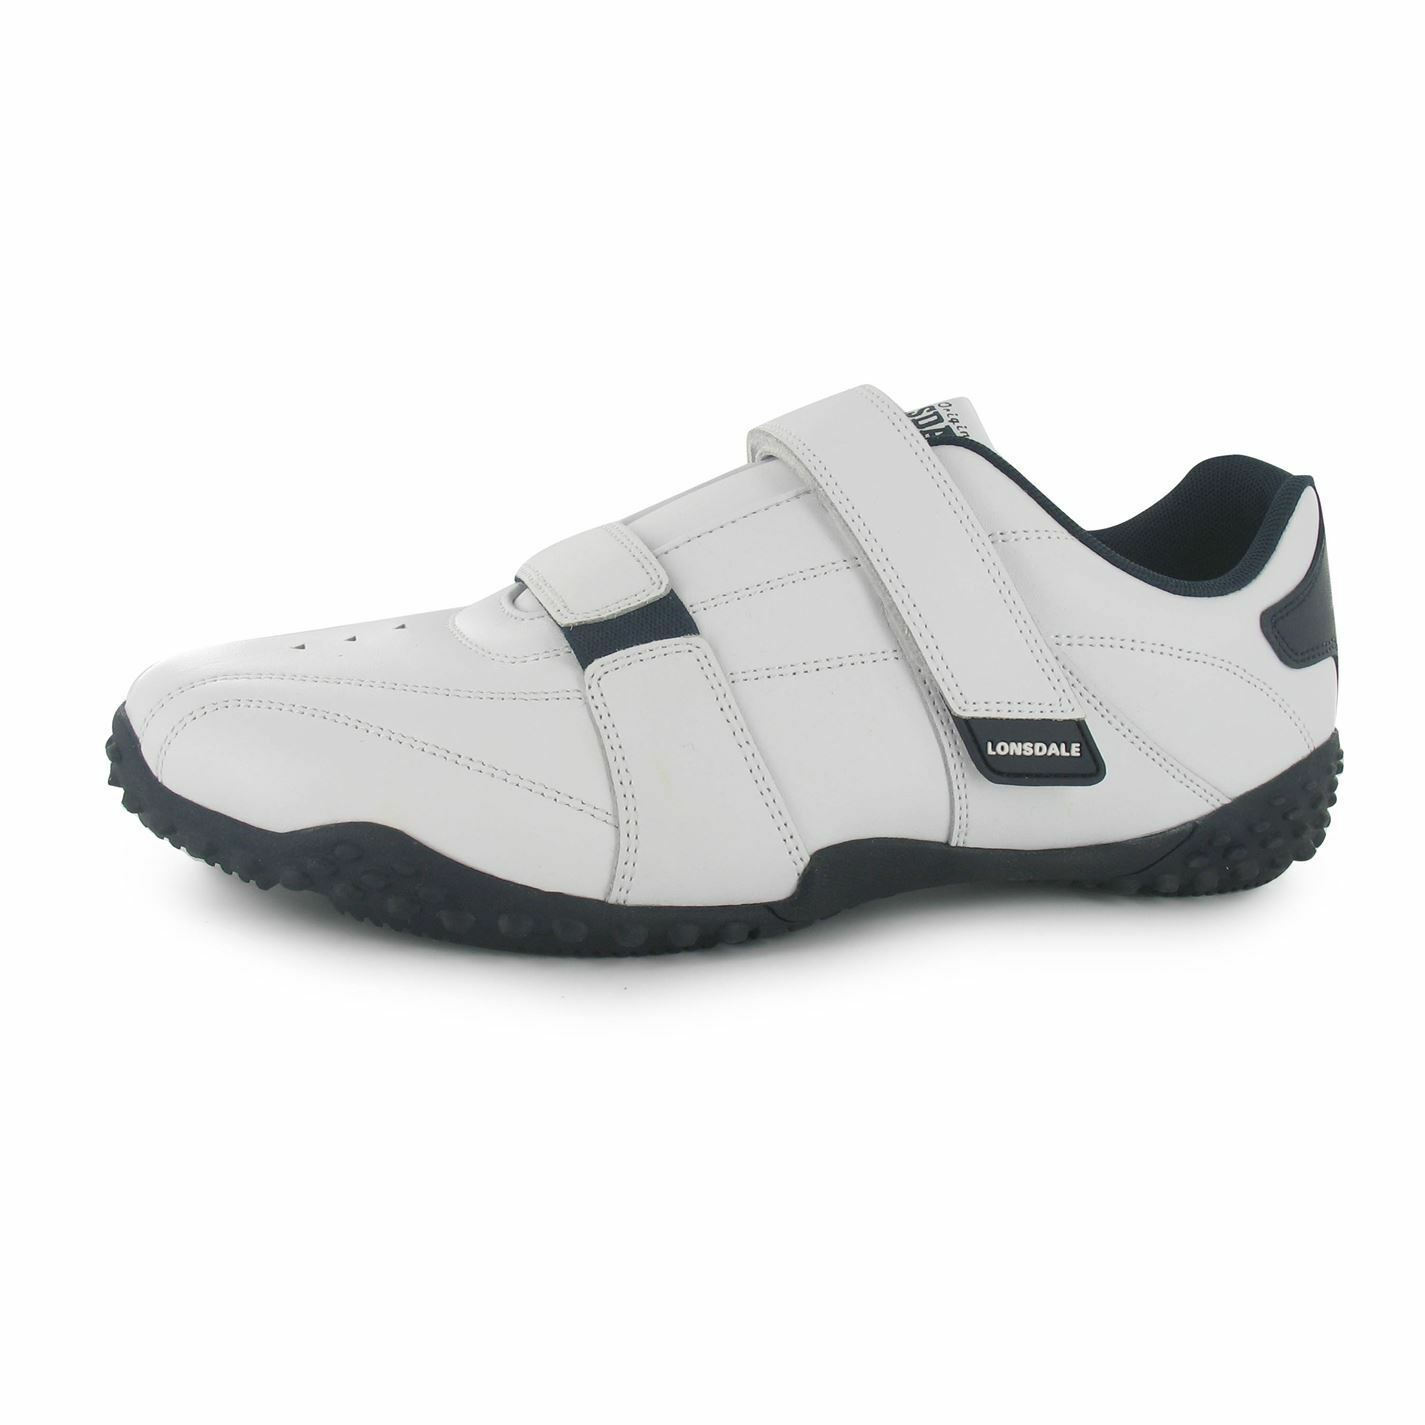 Lonsdale Fulham Trainers Mens White/Navy Casual Sneakers Shoes Footwear